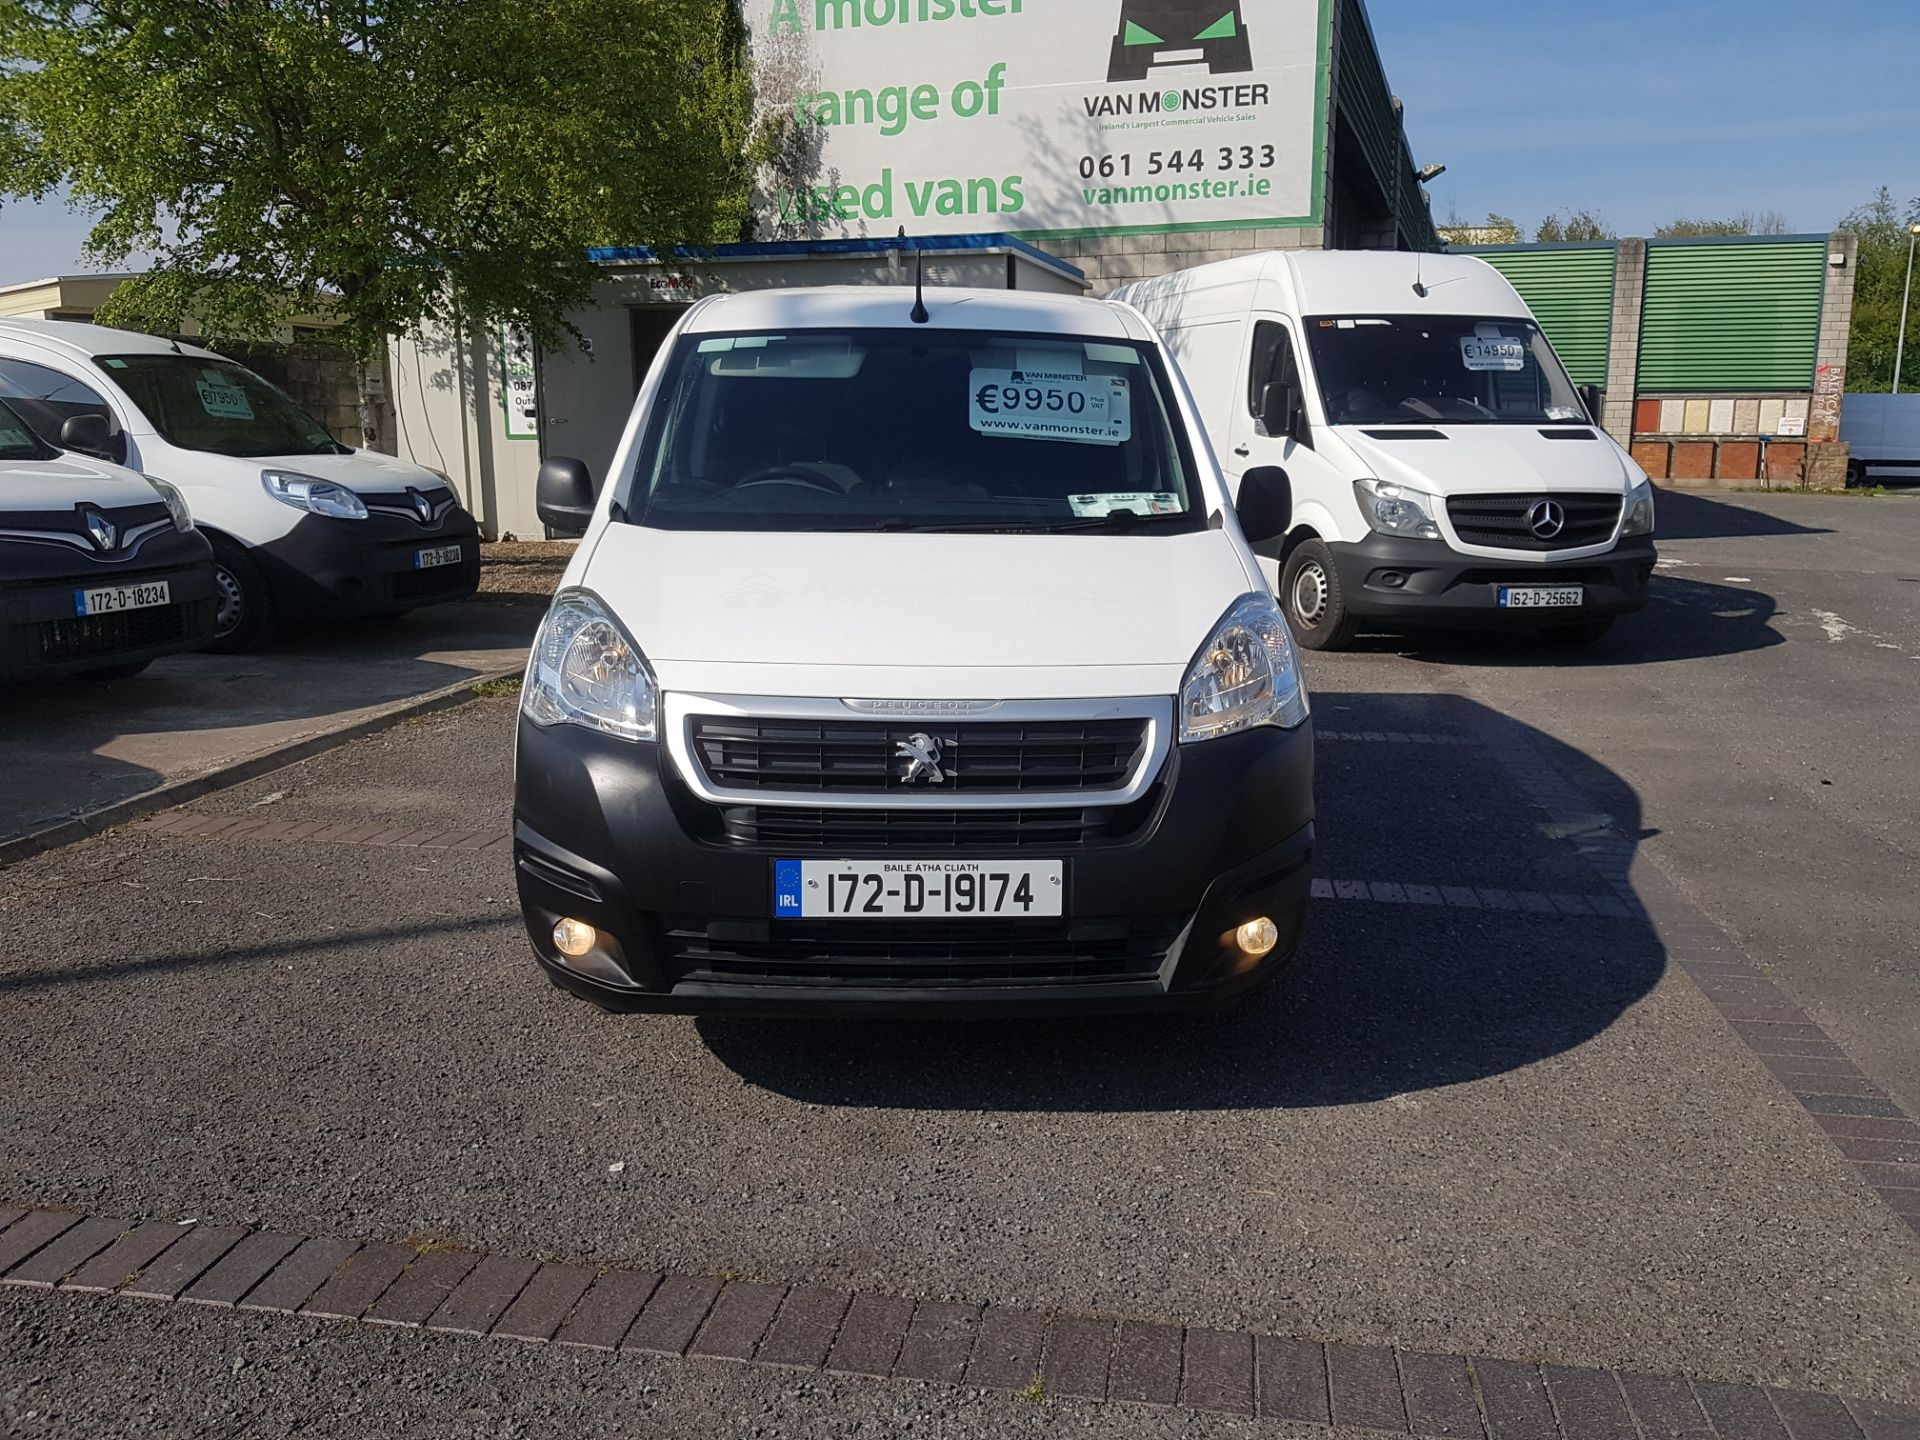 2017 Peugeot Partner Professional 1.6 Blue HDI 100 (172D19174) Image 8